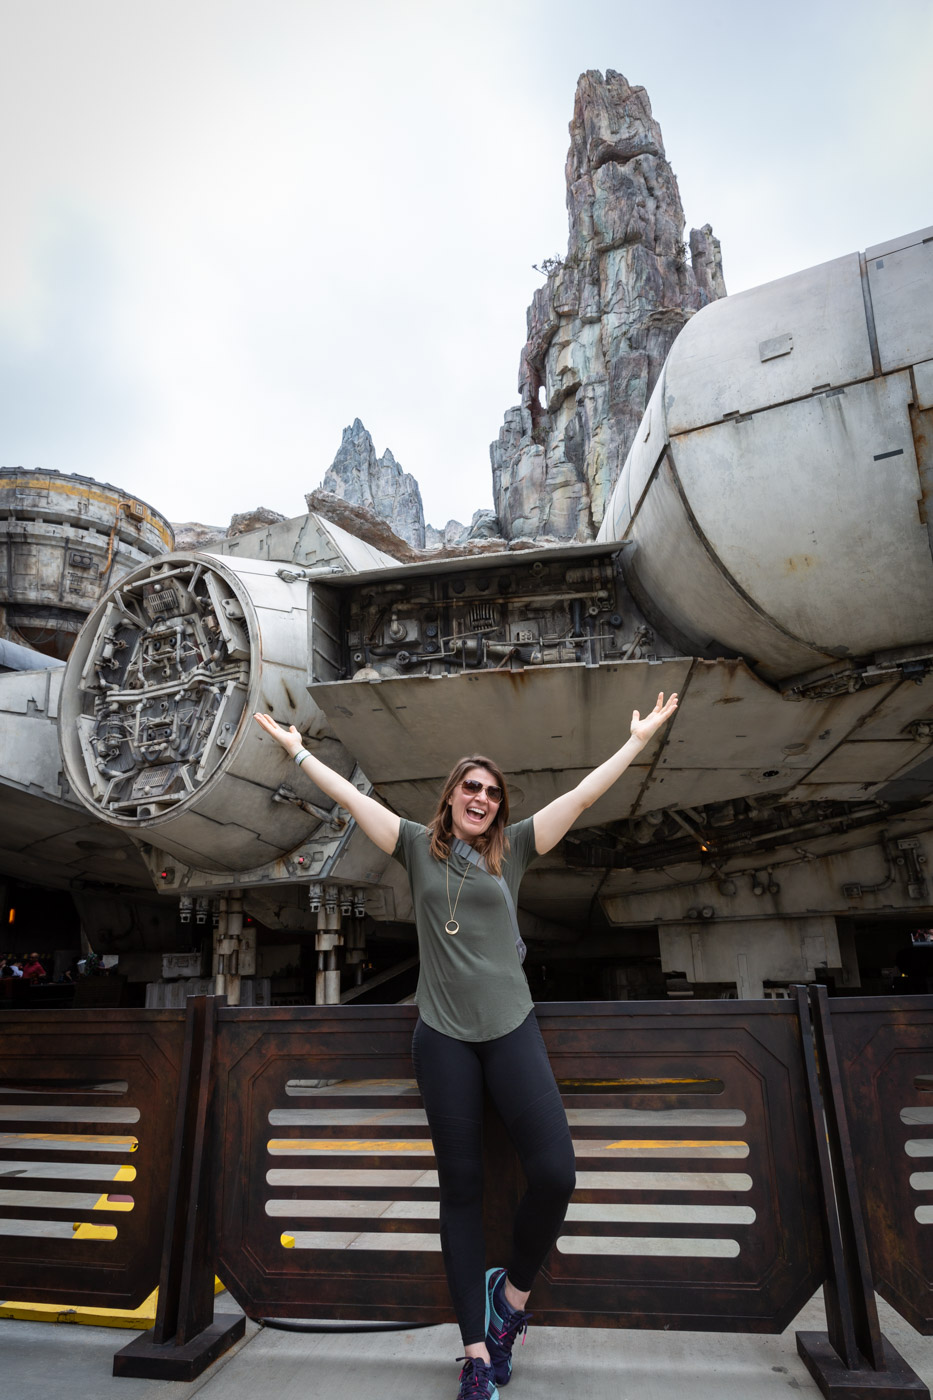 Batuu in Star Wars Land at Disneyland. Galaxy's Edge at Disneyland